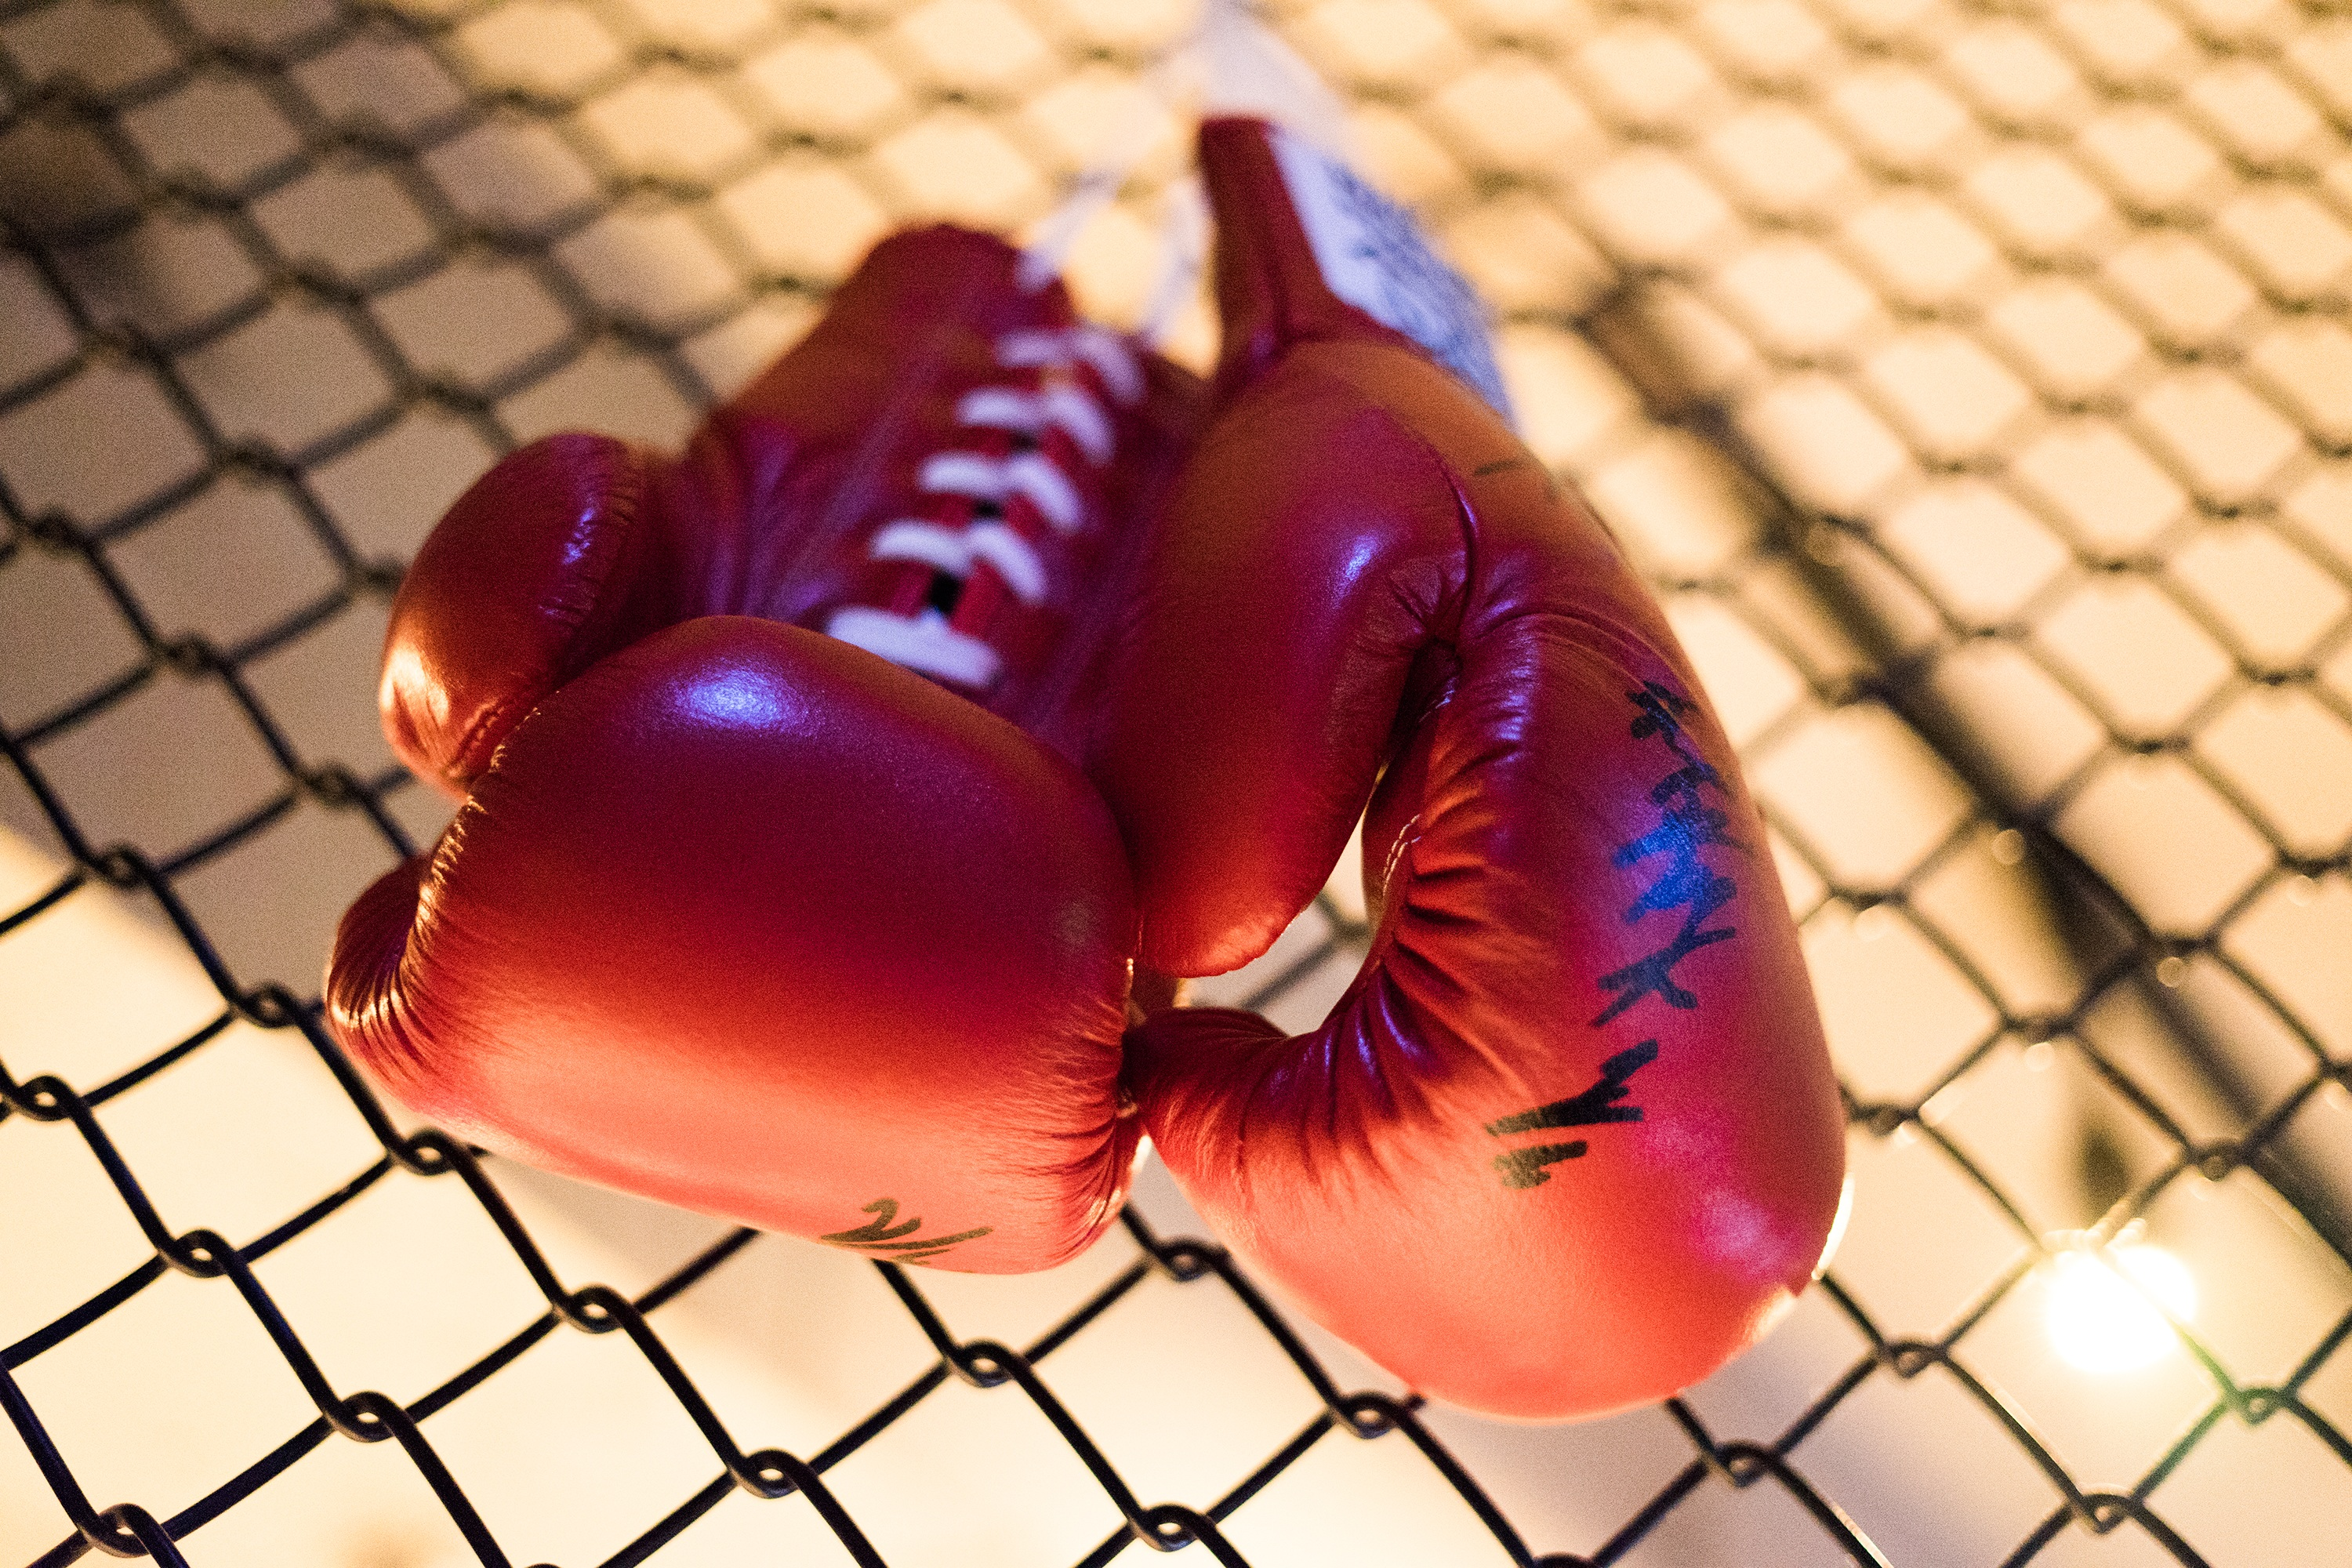 81065 download wallpaper Sports, Boxing, Fight, Struggle, Boxing Gloves screensavers and pictures for free